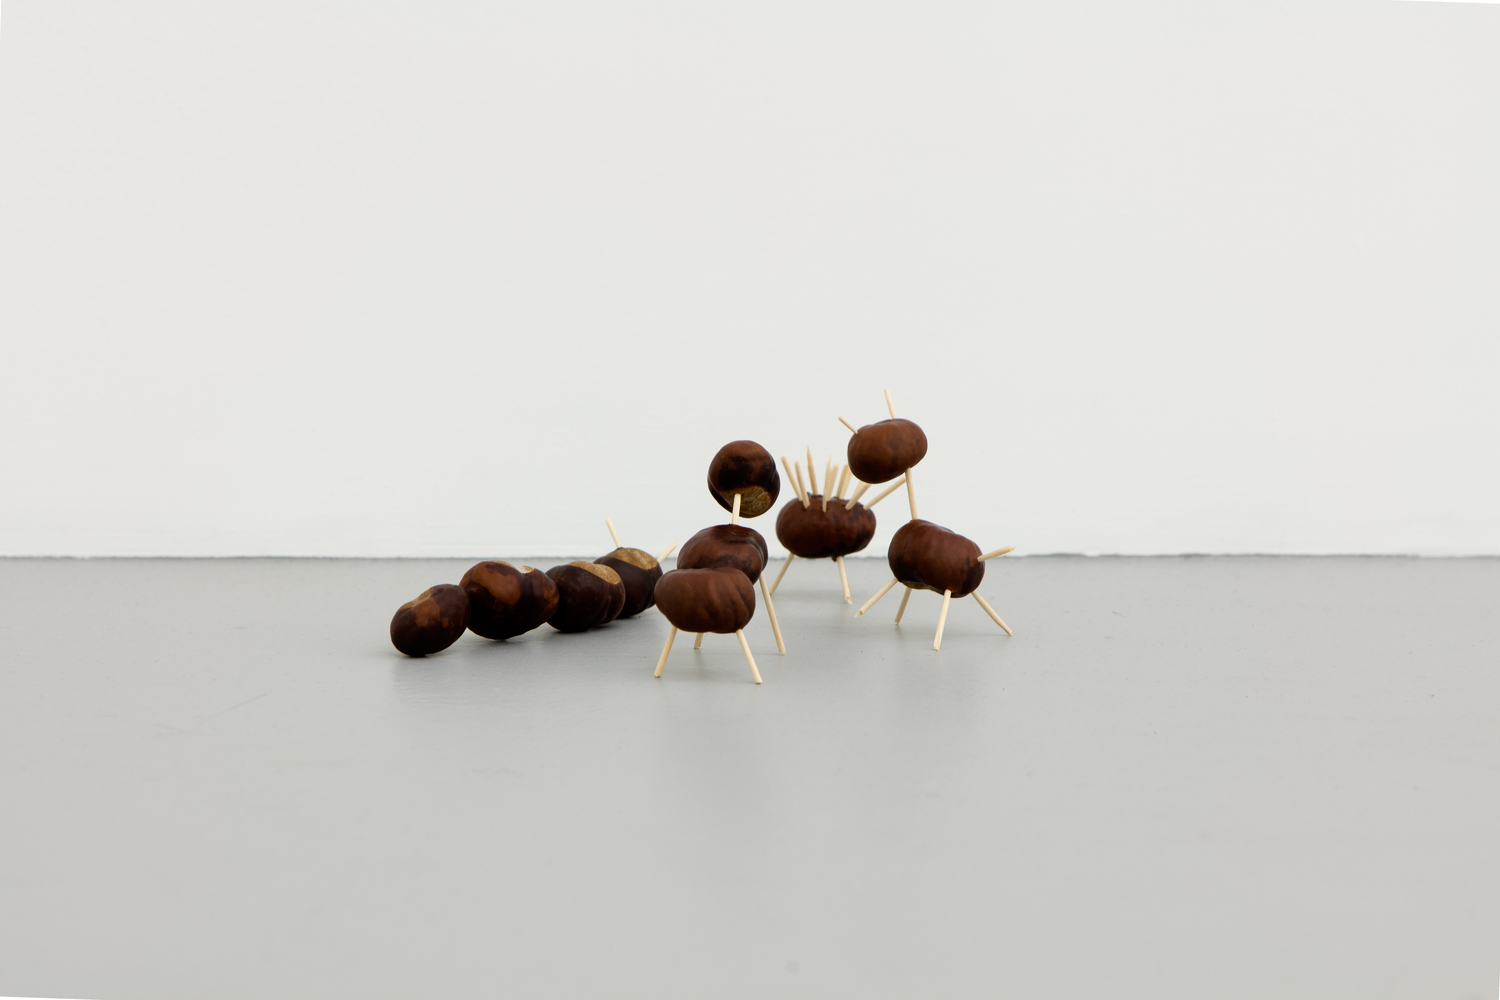 18_Anna-Sophie_Berger_and_Zak_Kitnick_Chestnut_Animals_2